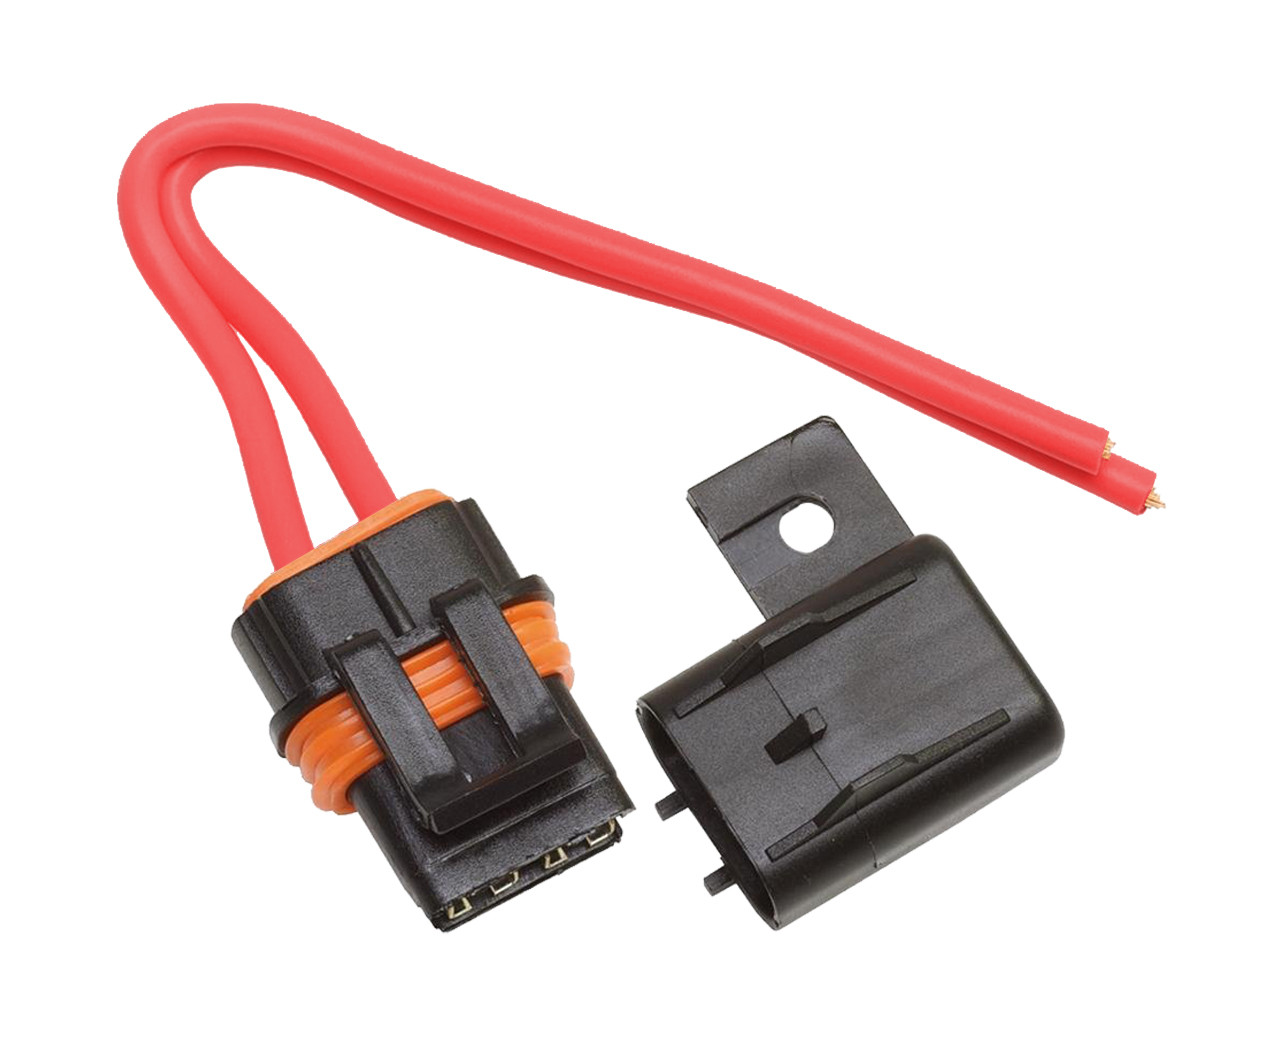 atc ato fuse holder up to a 40 amp fuse, 10 awg lead automotive fuse block wiring waterproof maxi fuse block wiring #1